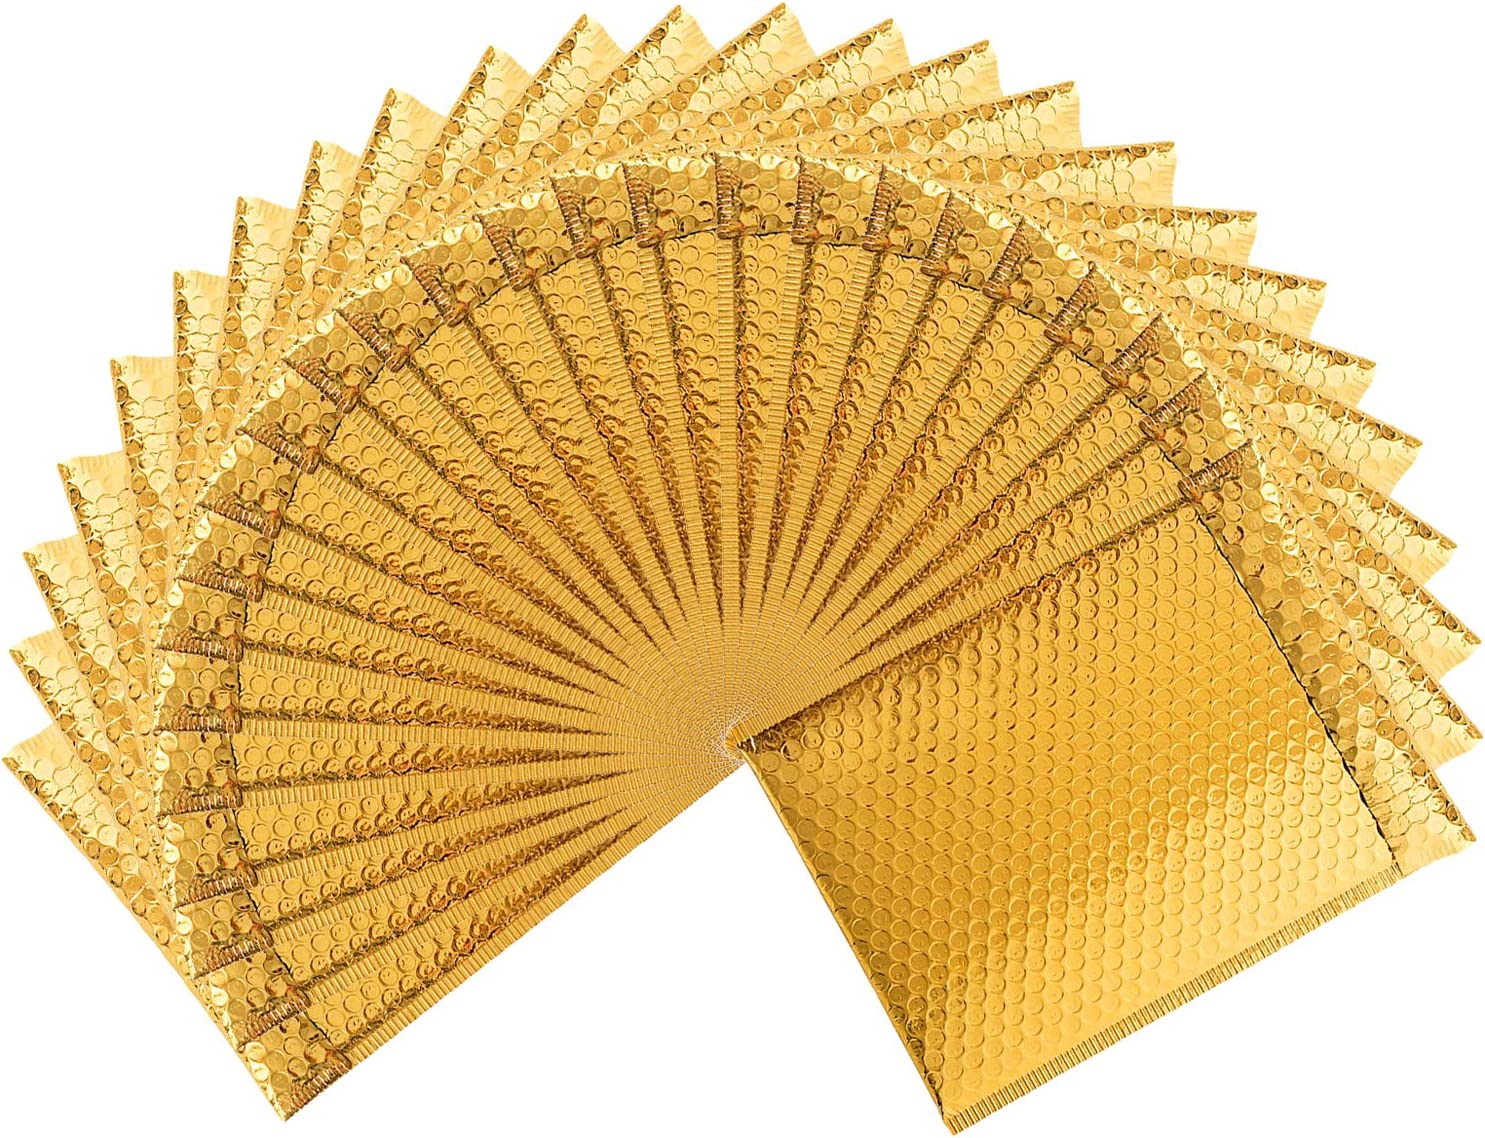 Pack of 25 Gold Cushion envelopes Bubble mailers 7.25 x 11 Padded envelopes 7 14 x 11 Exterior Size 8x11 Shipping mailers.